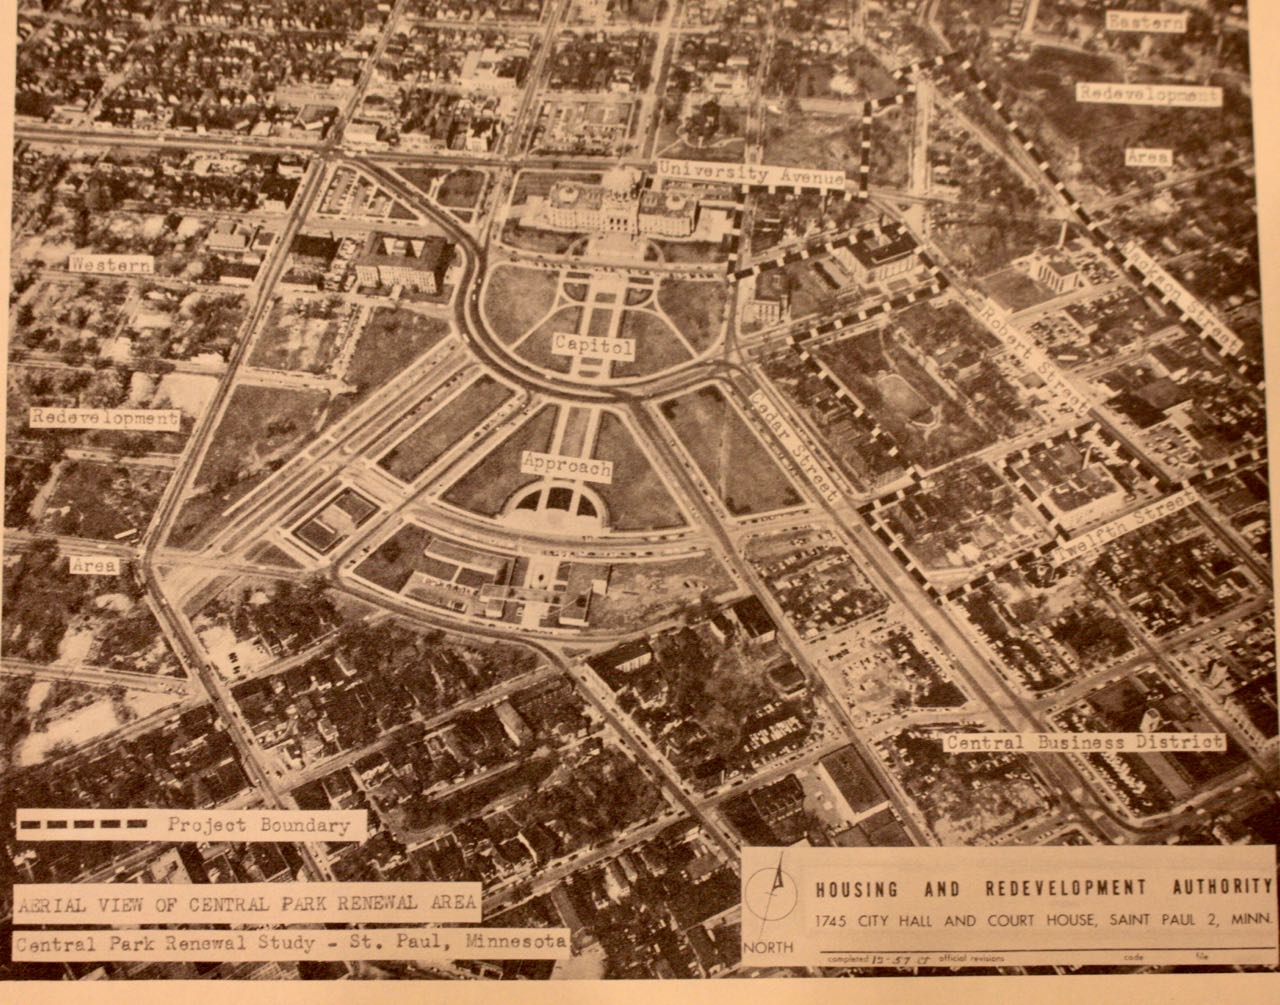 In 1957, the HRA labeled an aerial photo to give perspective to the proposed Eastern and Western Redevelopment Areas.